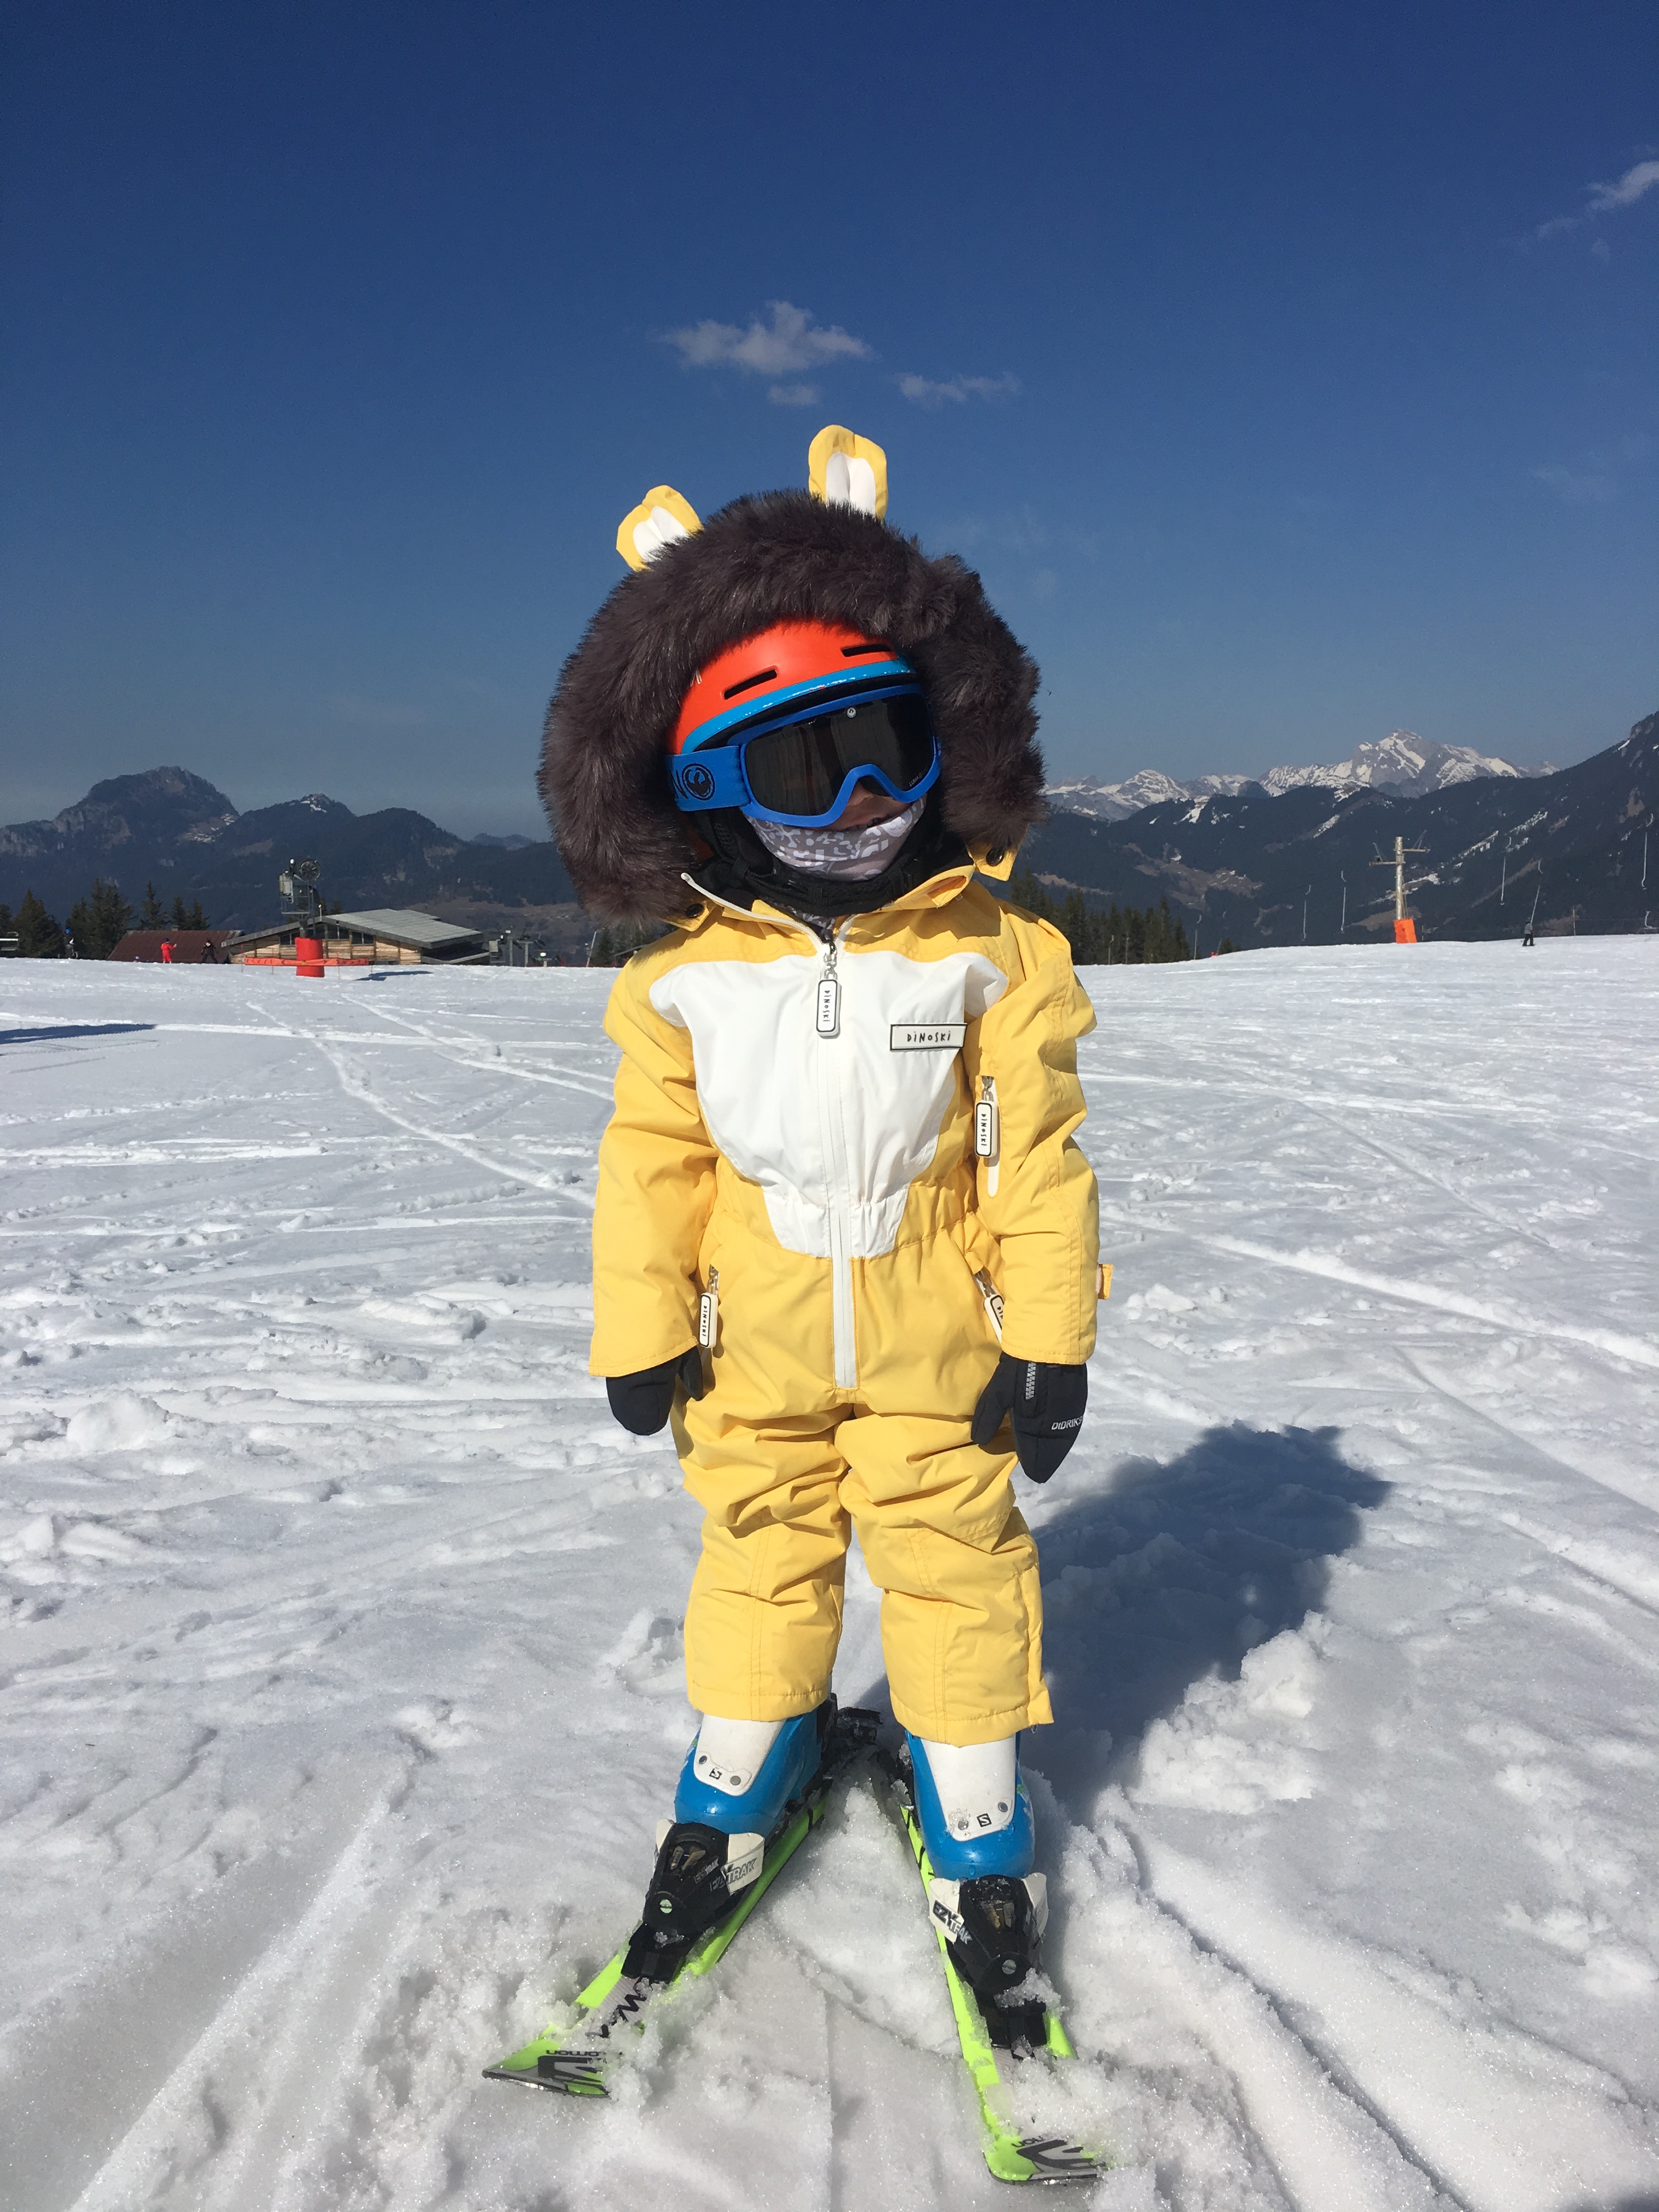 b563e40b AFTER ALL, WHY DRESS YOUR KIDS IN BORING-LOOKING SKI GEAR WHEN THEY CAN WEAR  DISTINCTIVE PASTEL COLOURS ADORNED WITH A HORNS, OR EARS, OR A TAIL?!